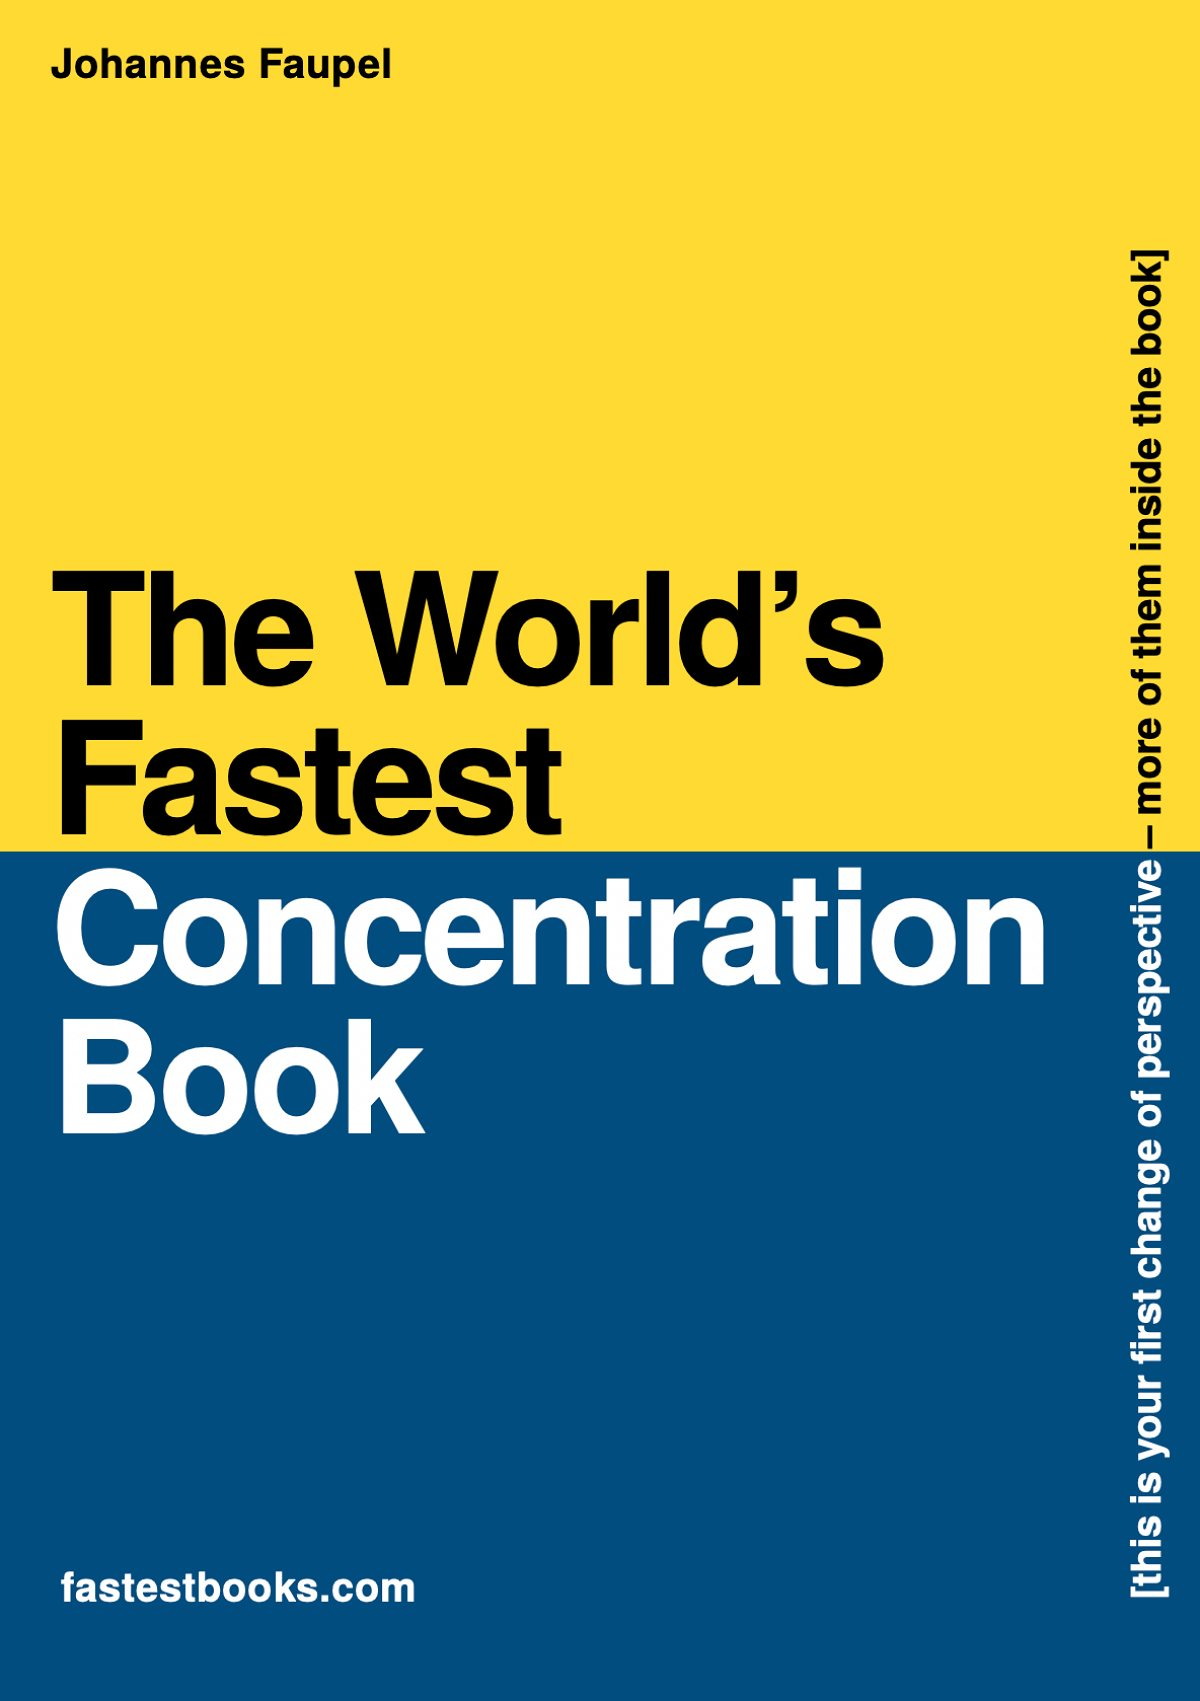 The World's Fastest Concentration Book